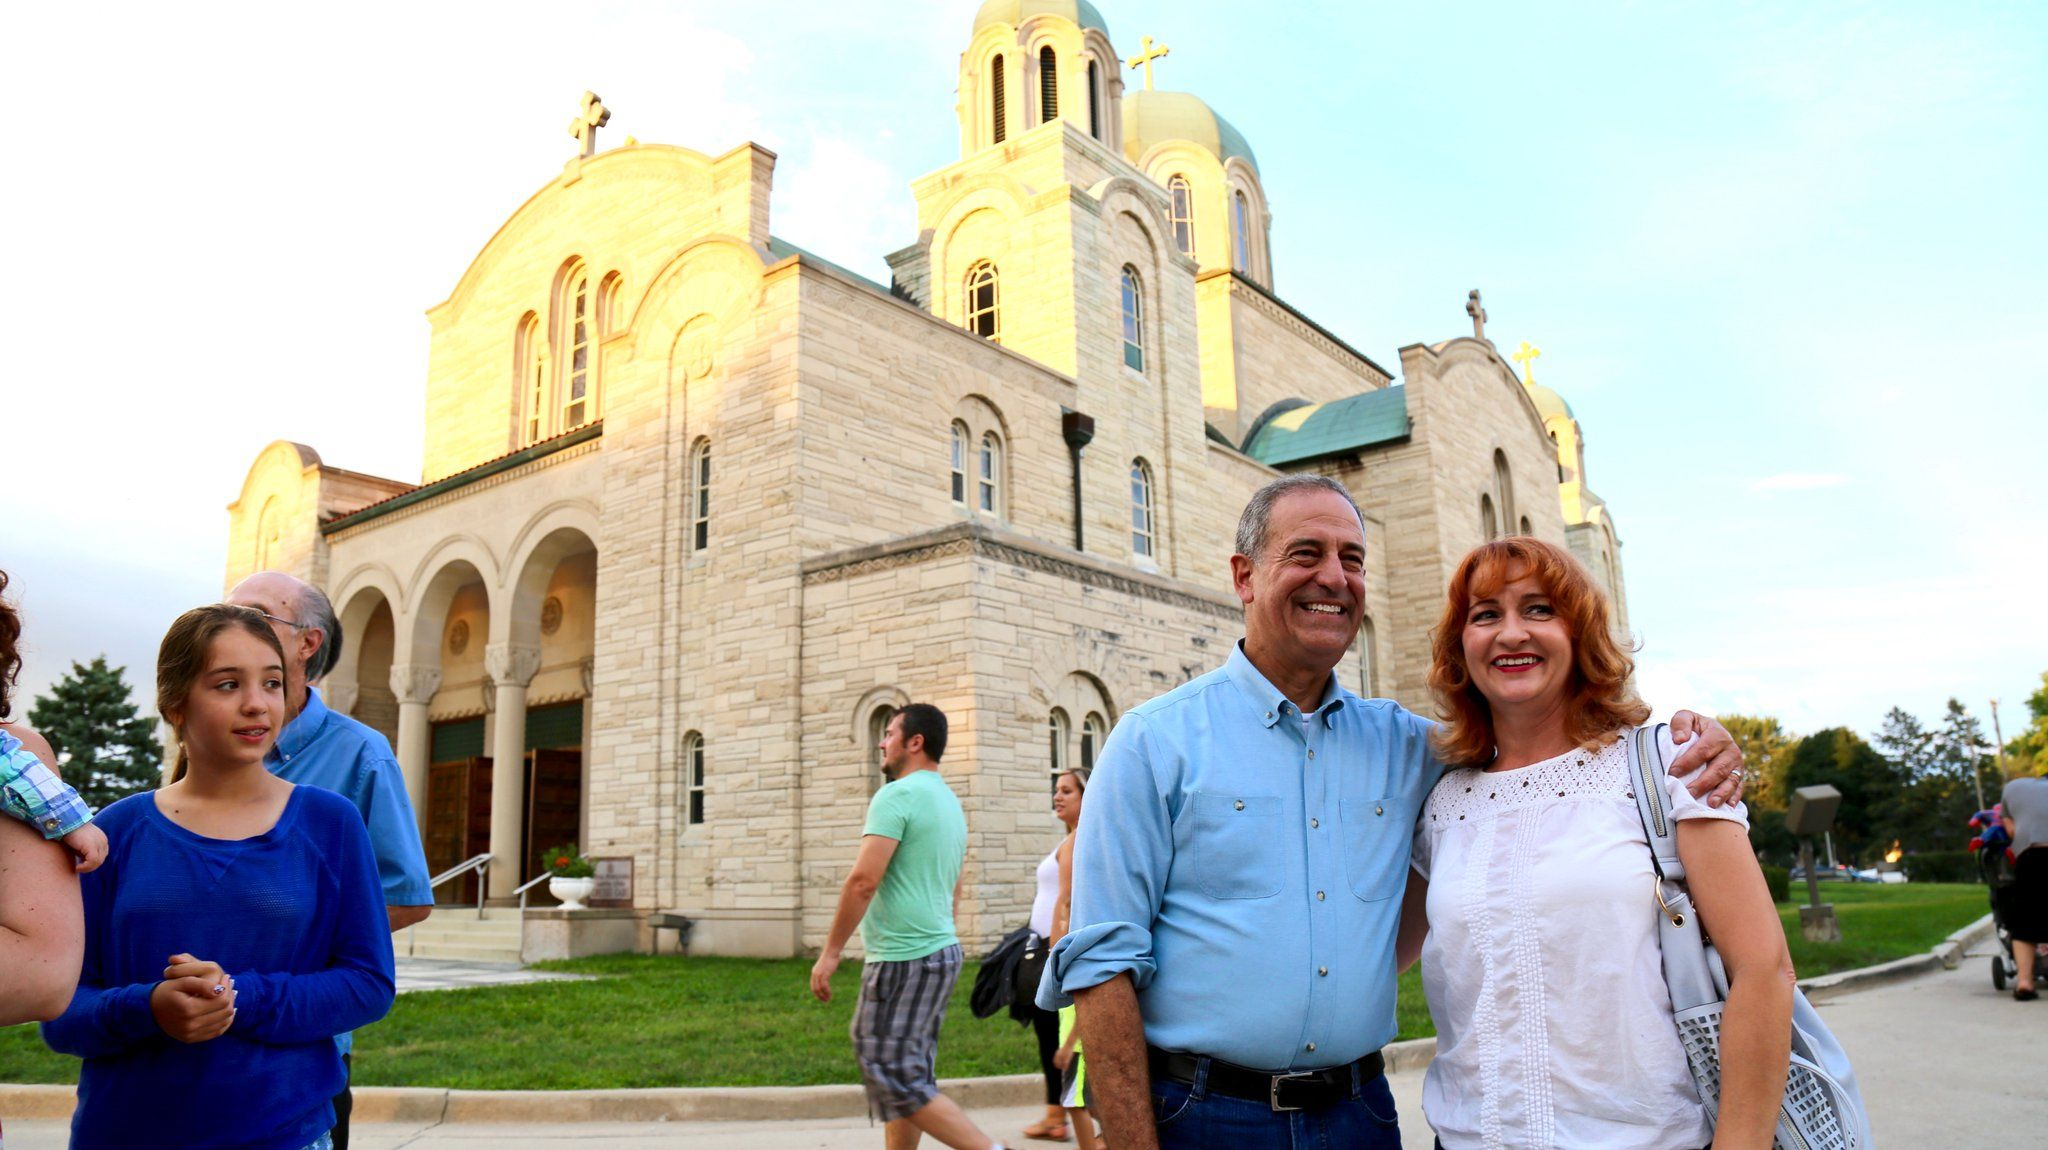 """Russ Feingold on Twitter: """"Great company, food, & music over the weekend at St. Sava Serbian Orthodox Cathedral's Serbian Days Festival in MKE! https://t.co/XG2xz9rkCV"""""""